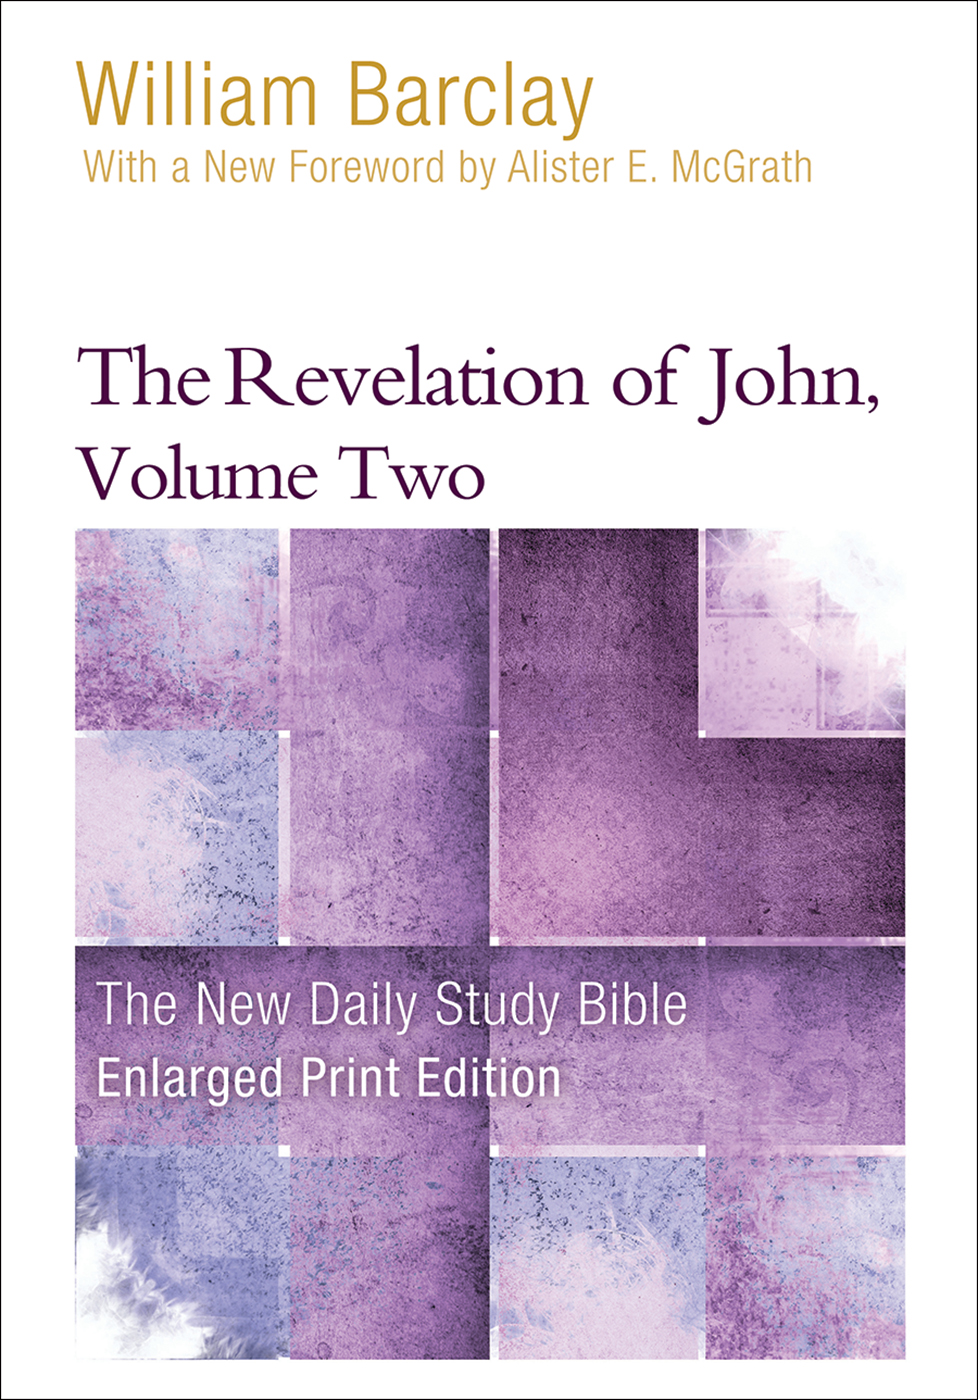 The Revelation of John, Volume 2-Enlarged